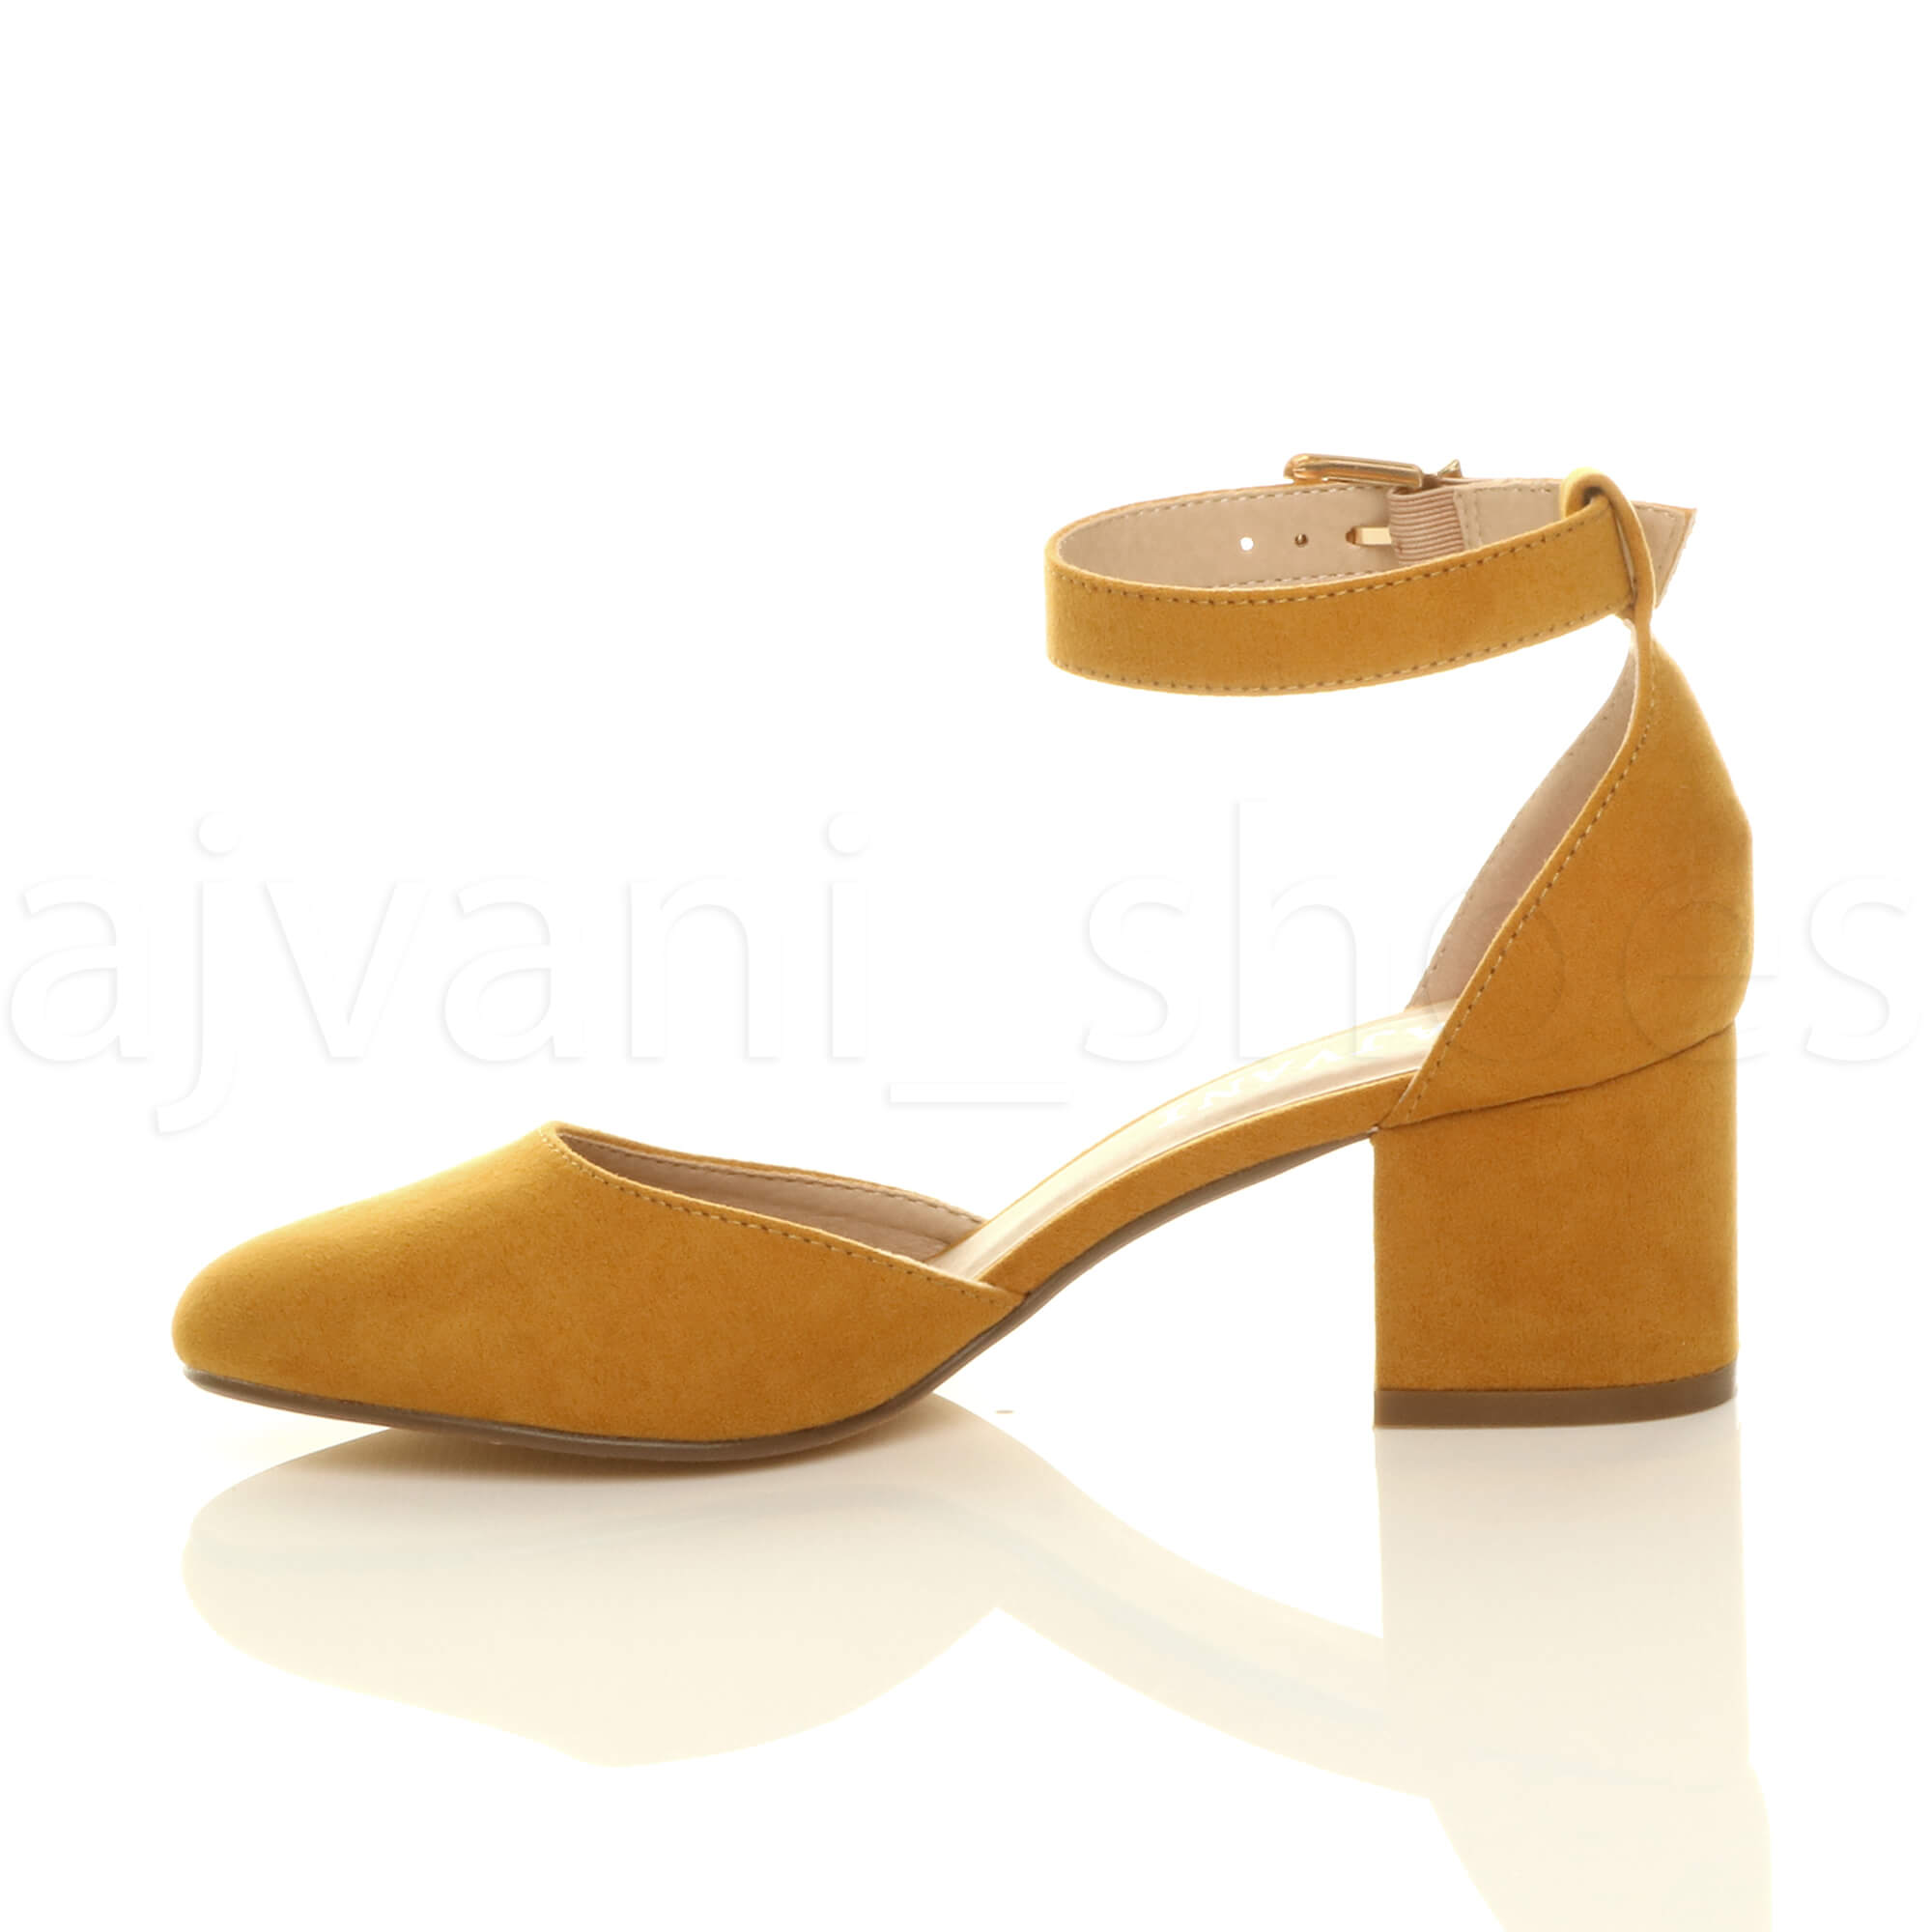 WOMENS-LADIES-LOW-MID-BLOCK-HEEL-ANKLE-STRAP-MARY-JANE-COURT-SHOES-SANDALS-SIZE thumbnail 84